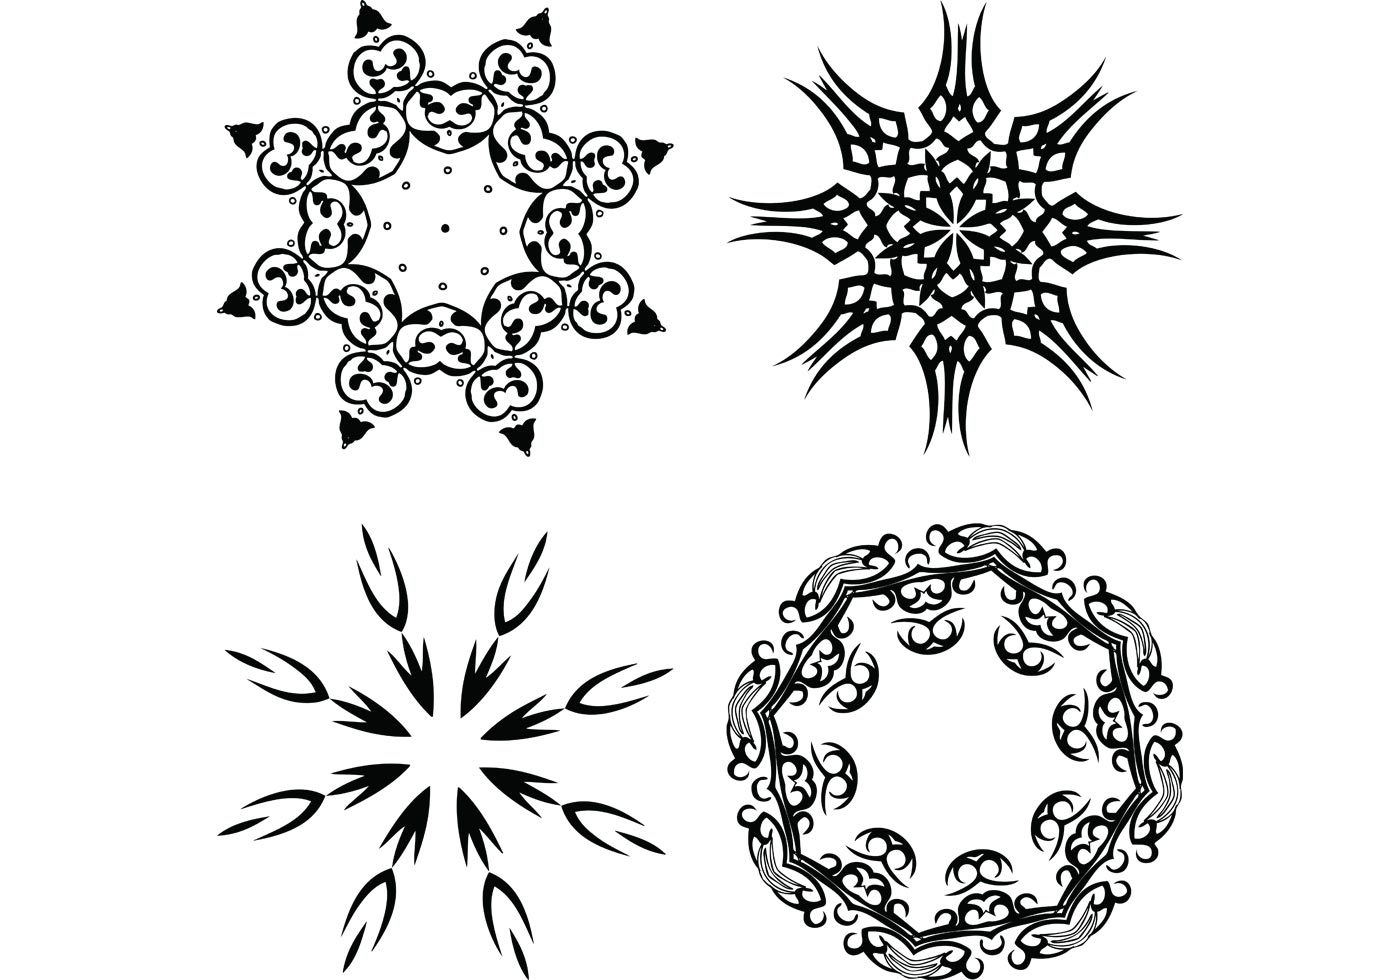 free vector graphics design elements download free